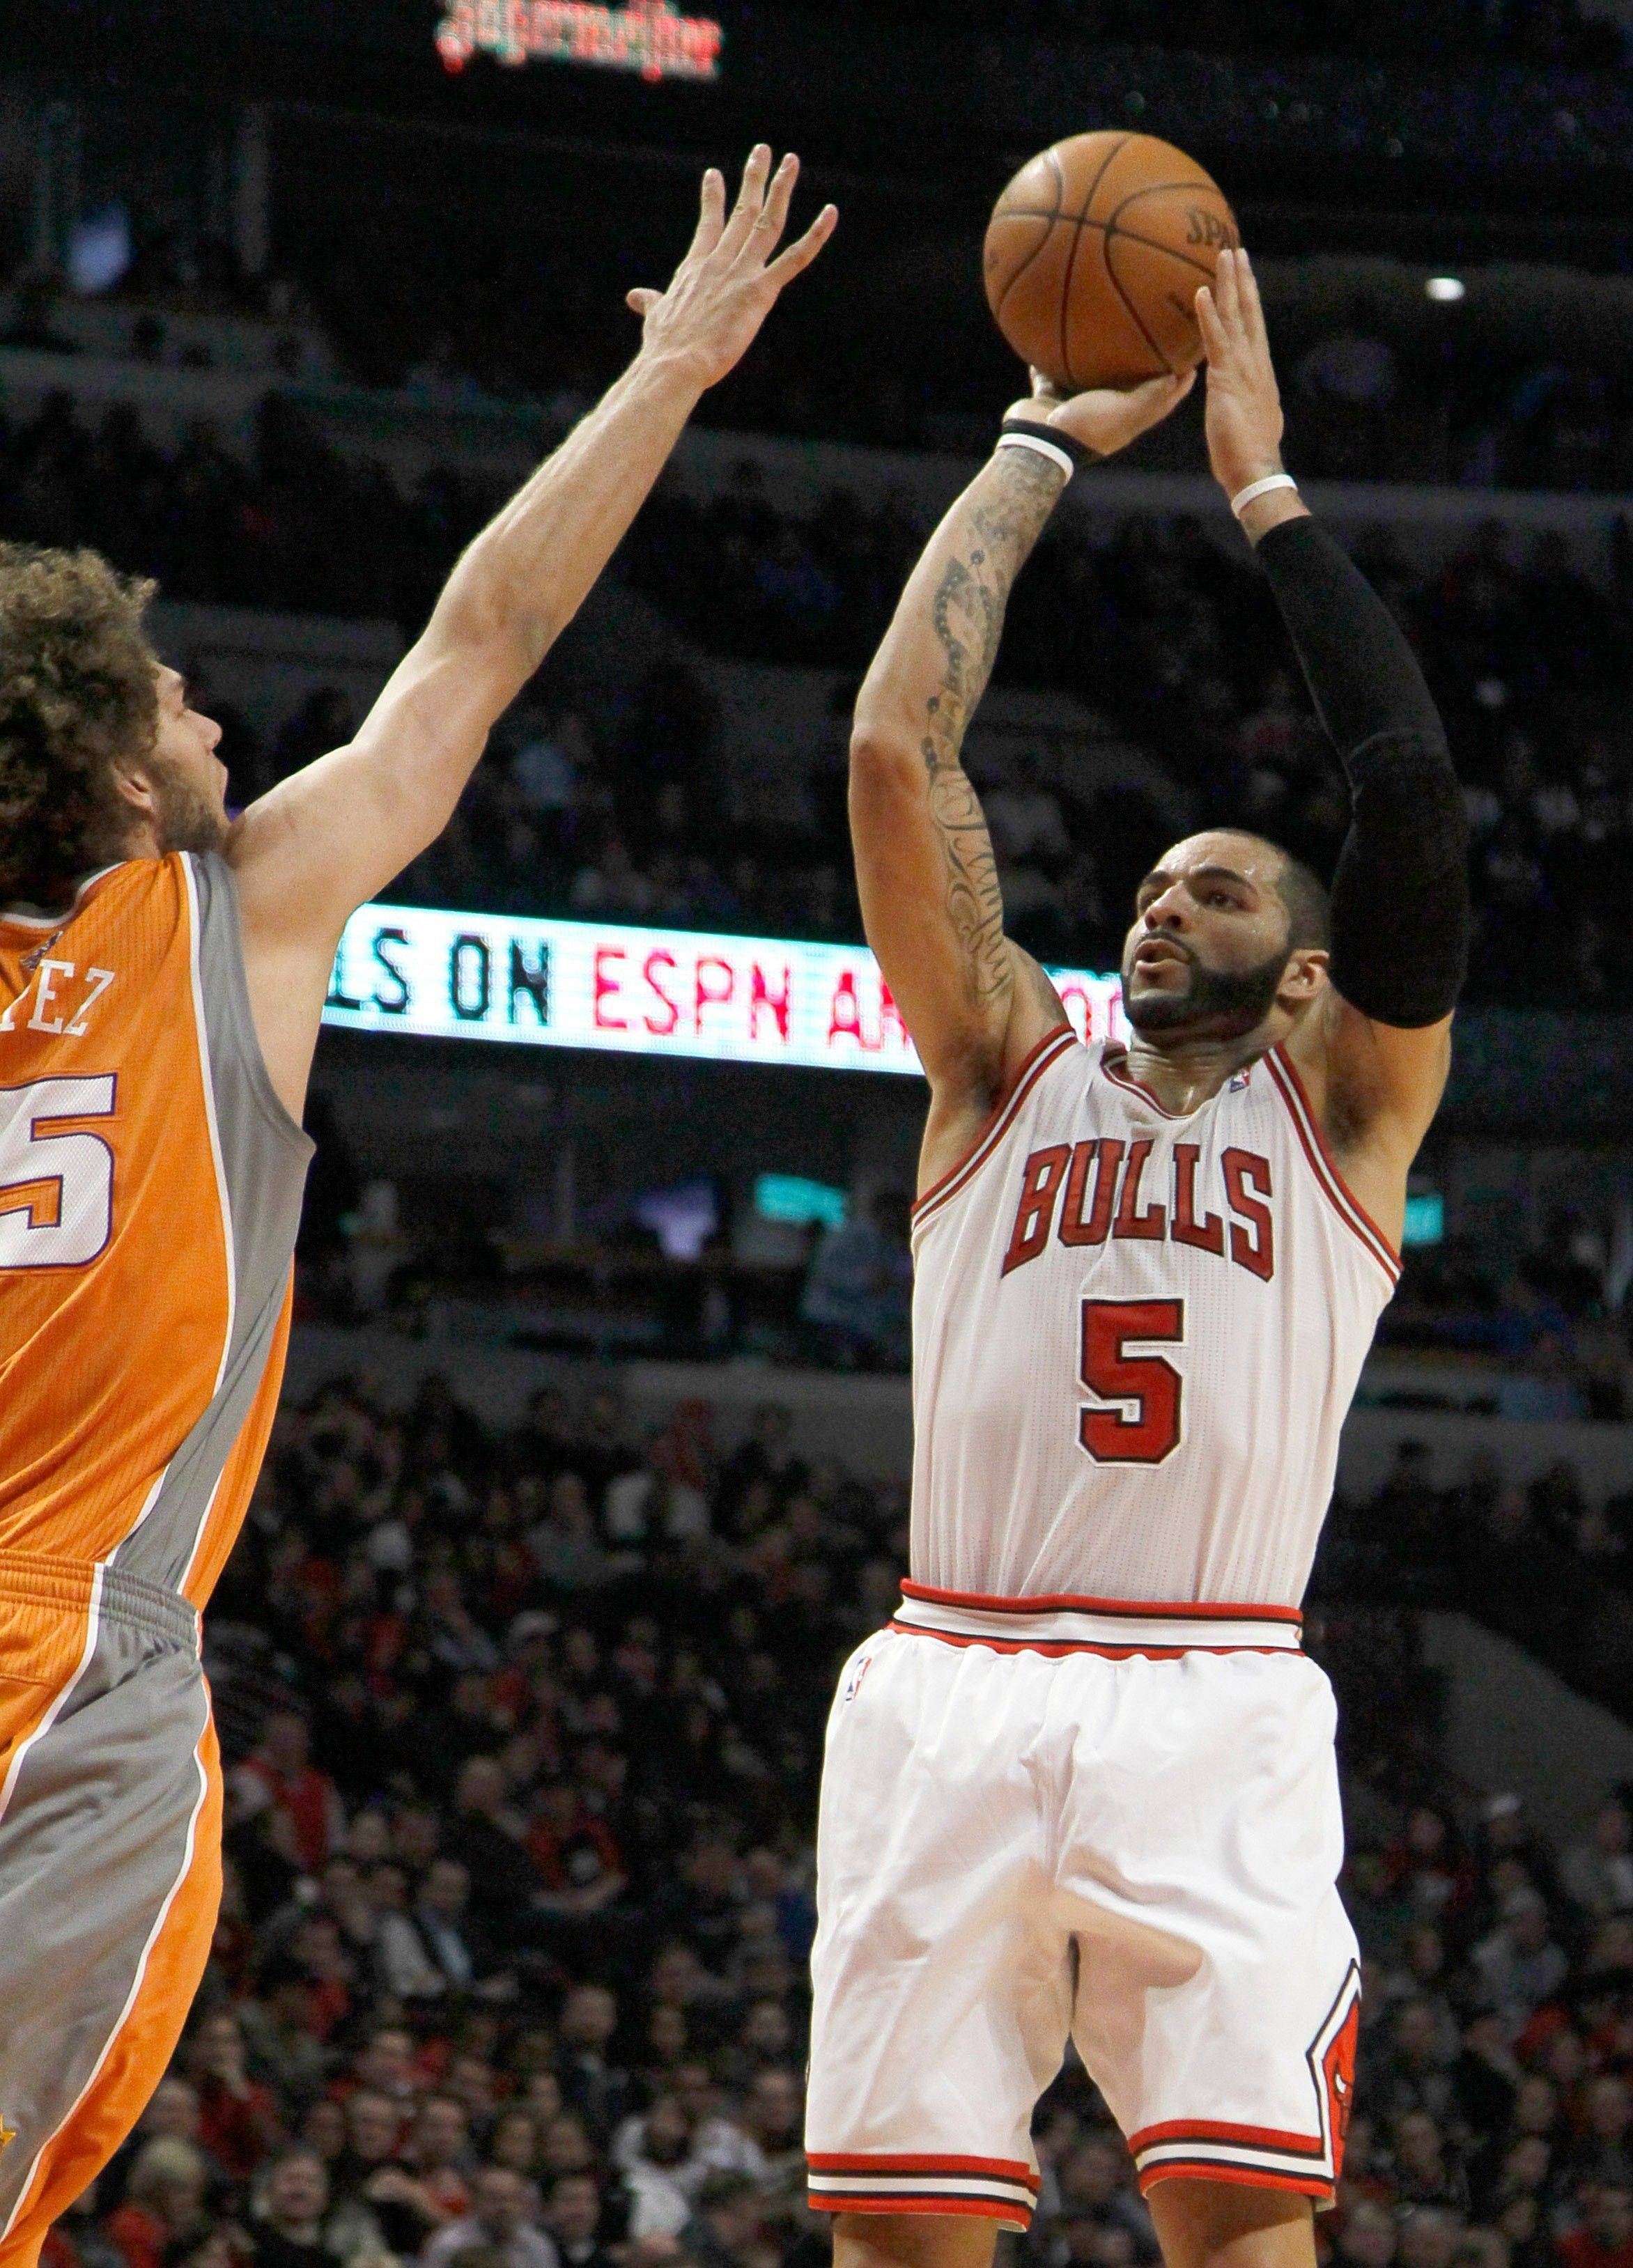 Boozer leads Bulls in 118-97 win over Suns